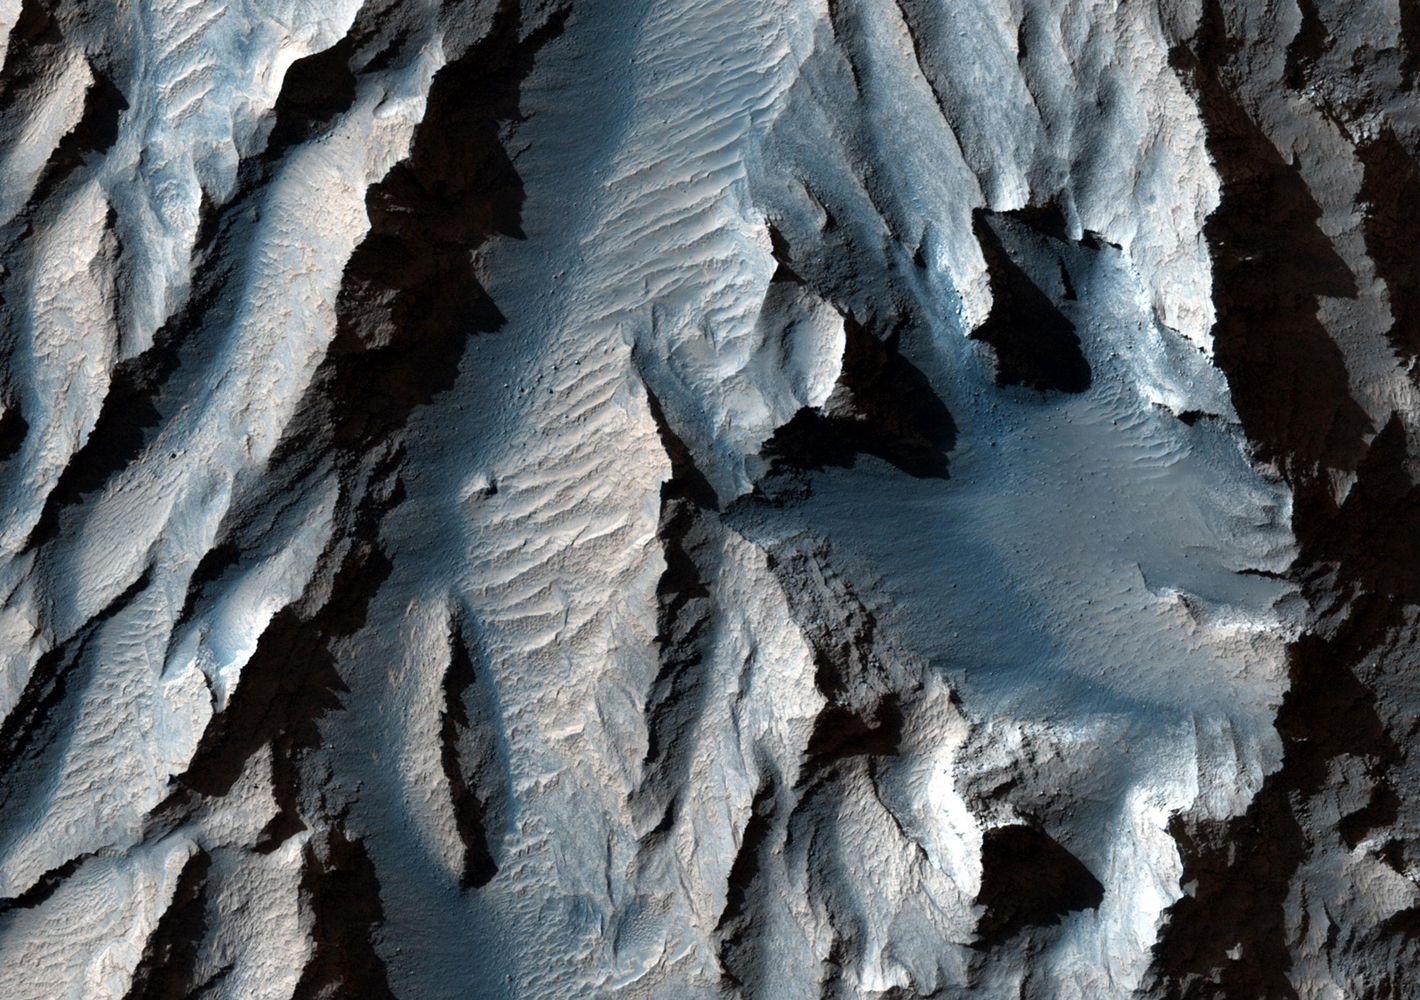 An east-facing slope in Mars's Tithonium Chasma, obtained Jan. 10, 2014, showing sediment layers of near-uniform thickness. The layers are the dark and light stripes that run diagonally across the center of the picture.